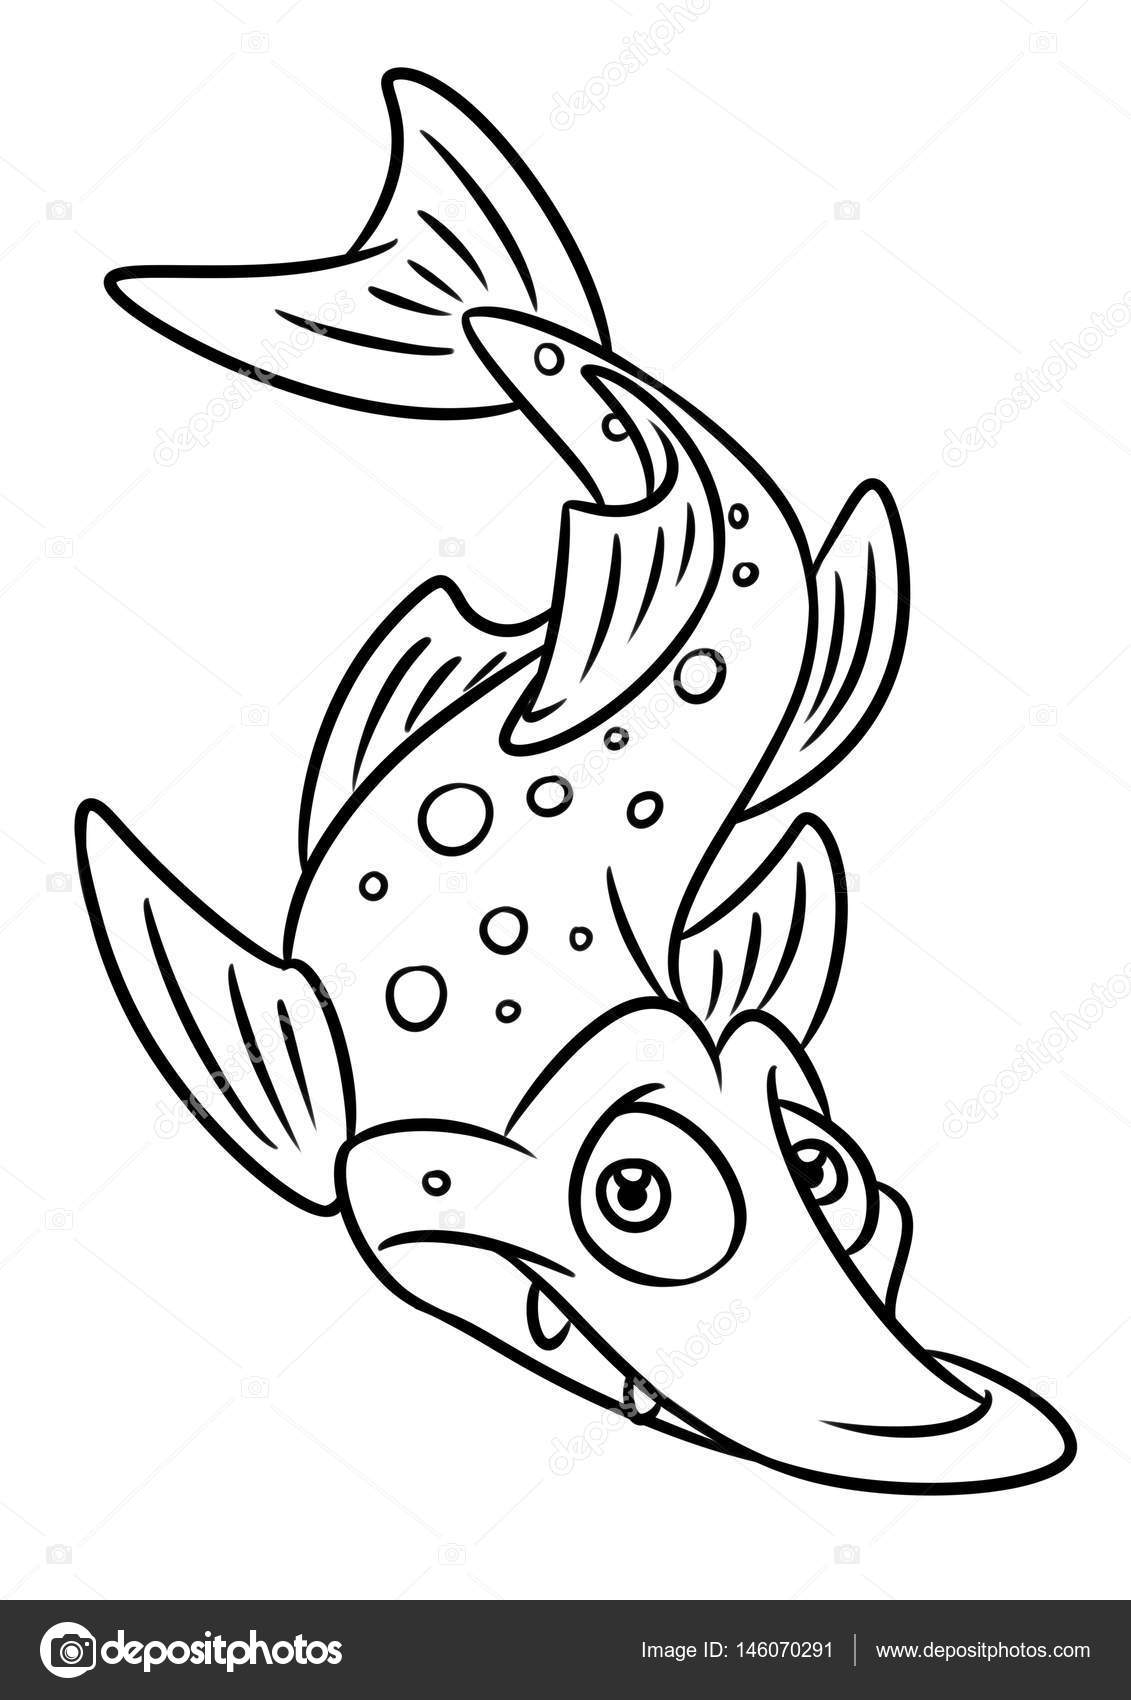 Fish Pike Coloring Page Cartoon Illustrations Isolated Image Animal  Character U2014 Photo By Efengai